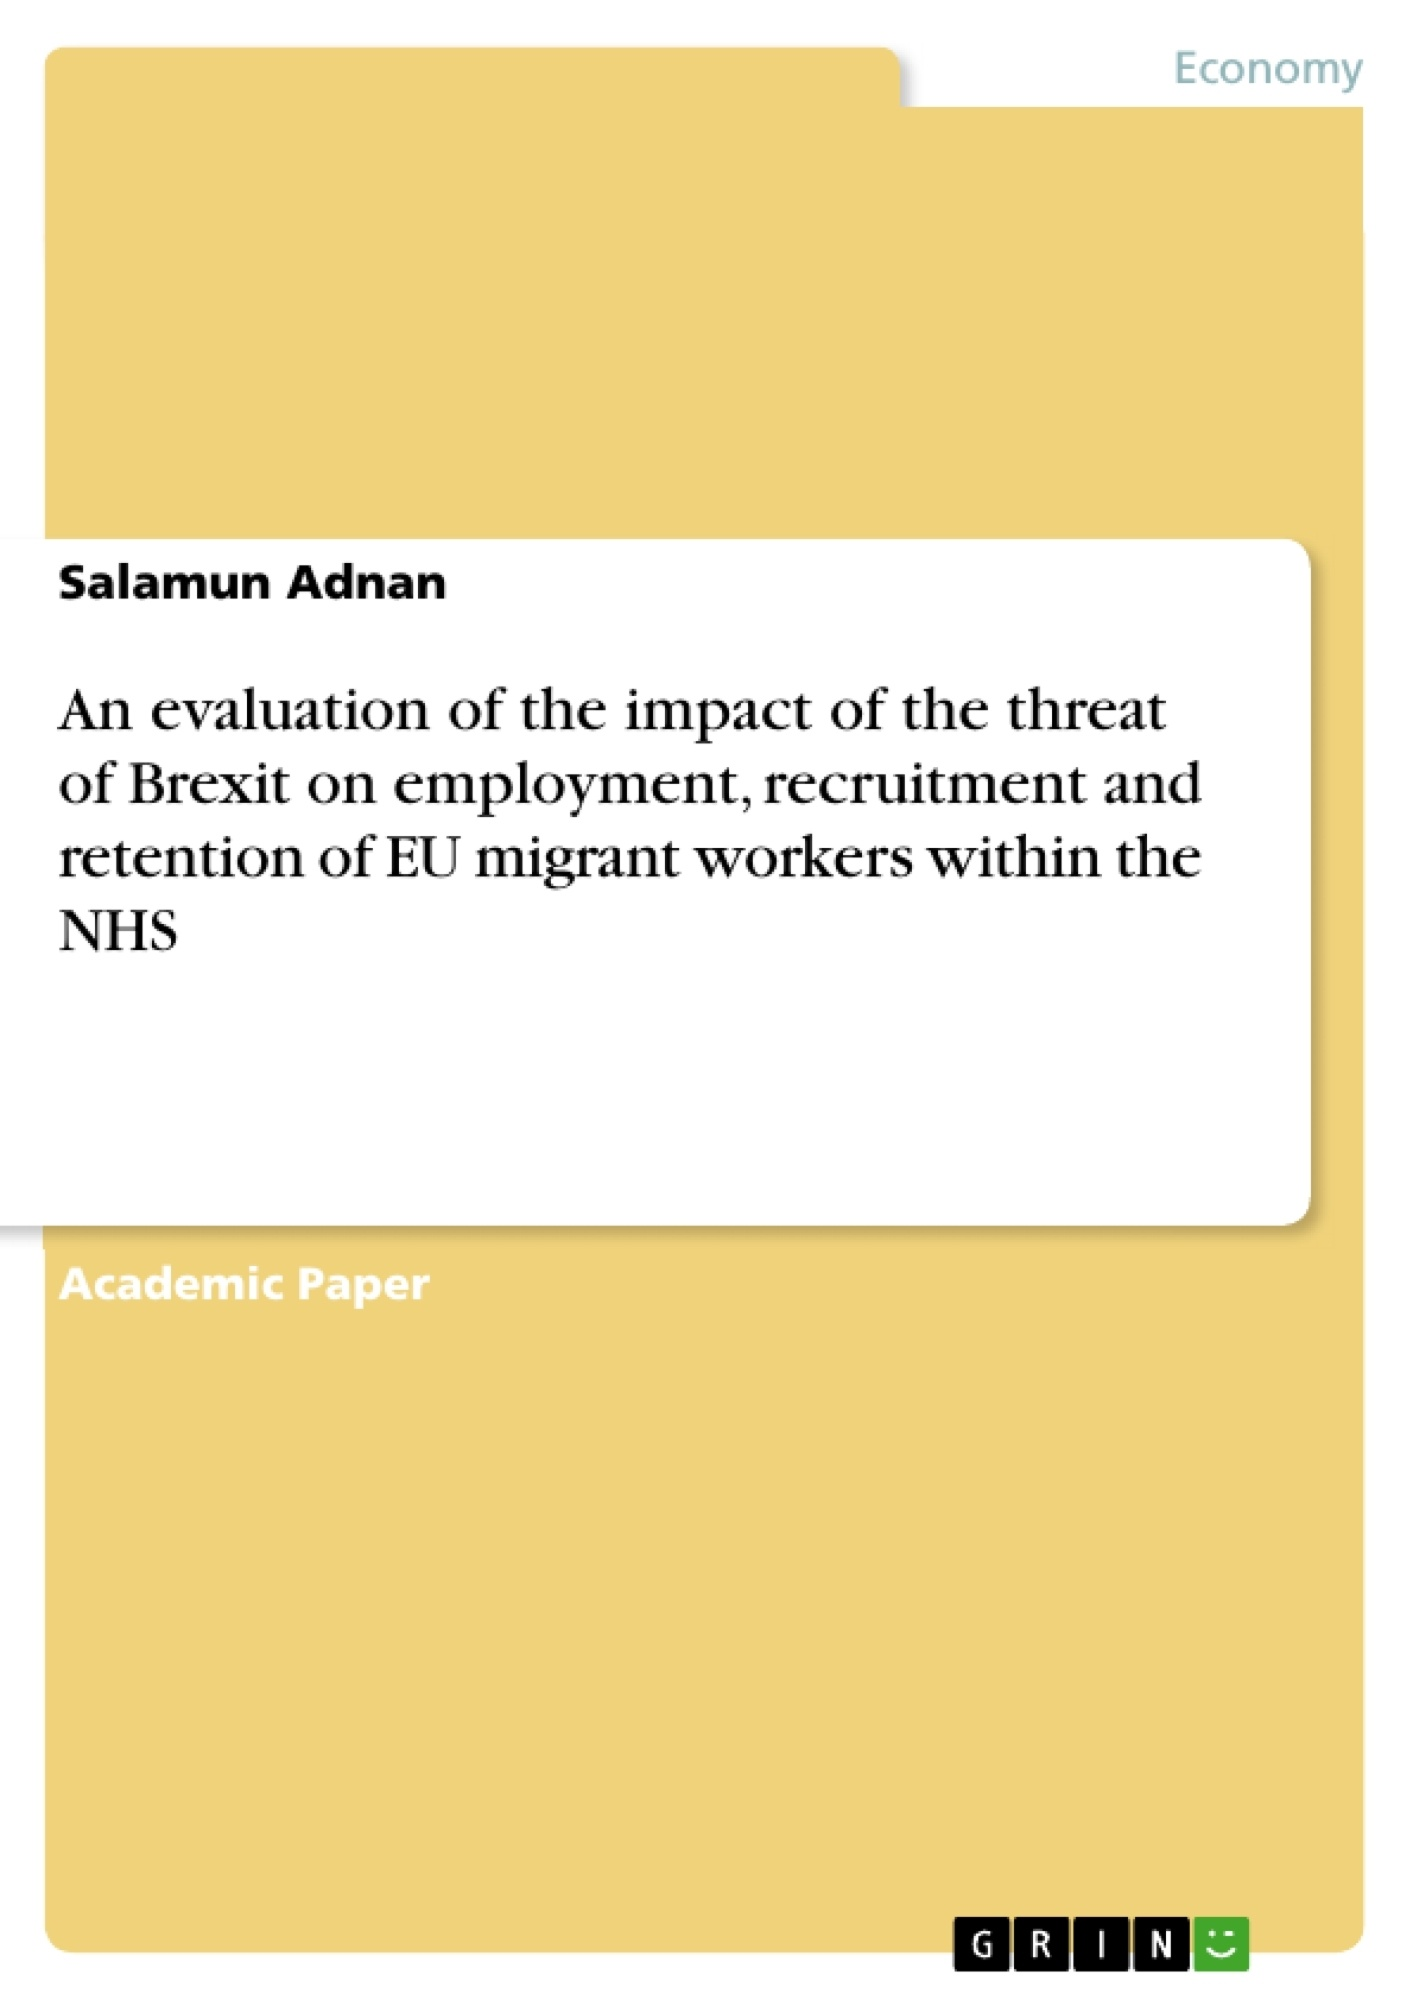 Title: An evaluation of the impact of the threat of Brexit on employment, recruitment and retention of EU migrant workers within the NHS